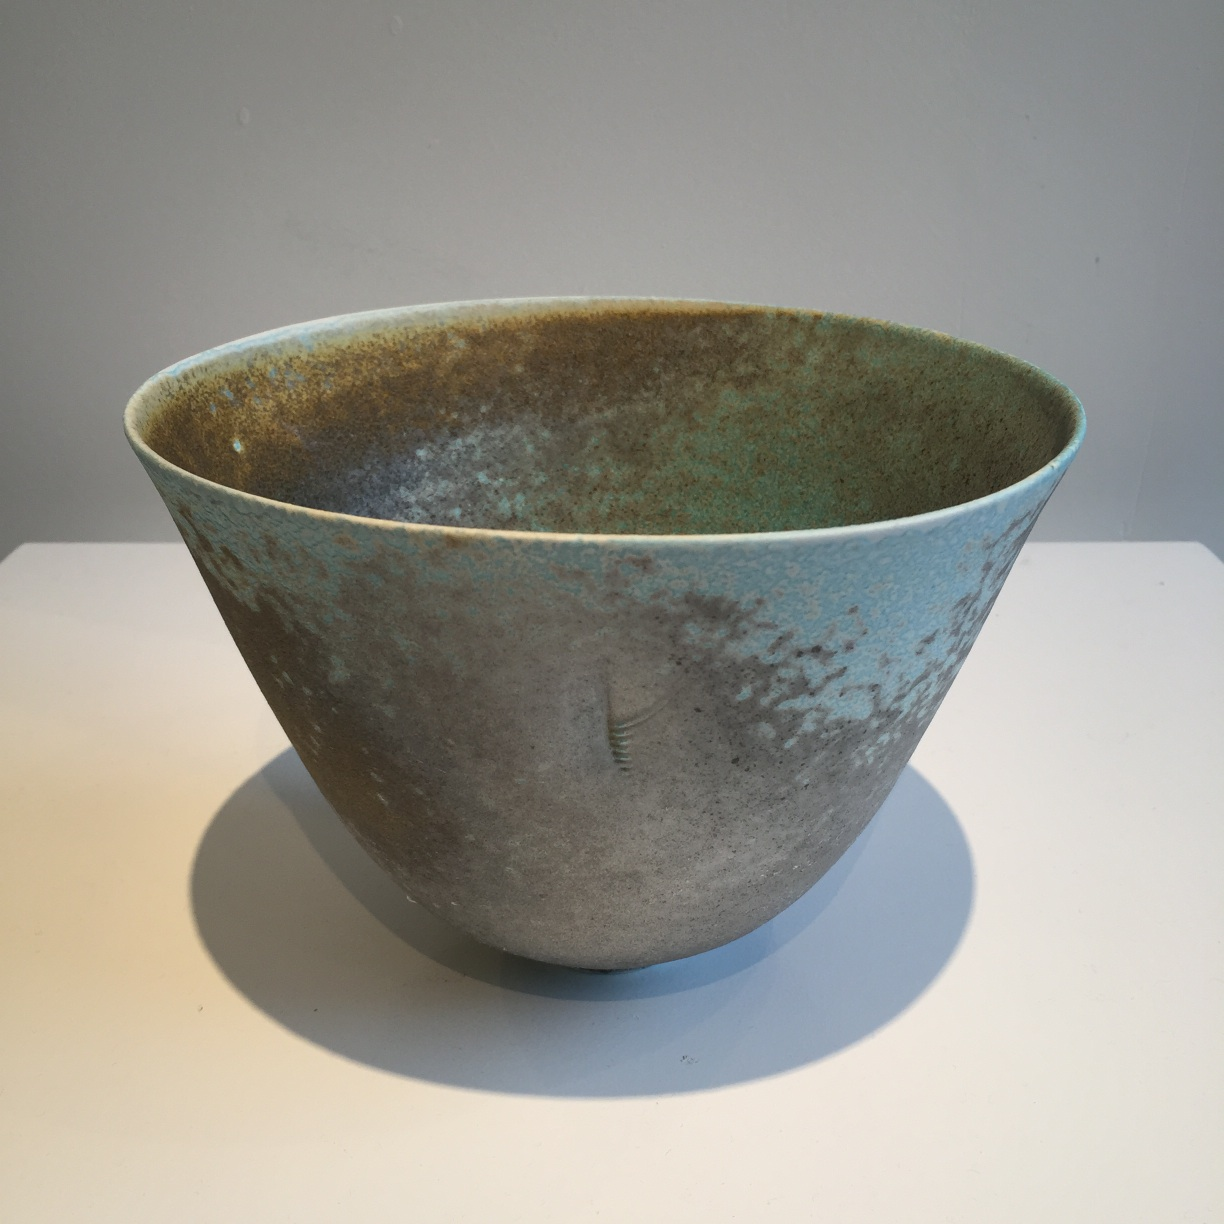 Jack Doherty, Conical Form 1, soda fired porcelain, 19 x 14cms, EUR320